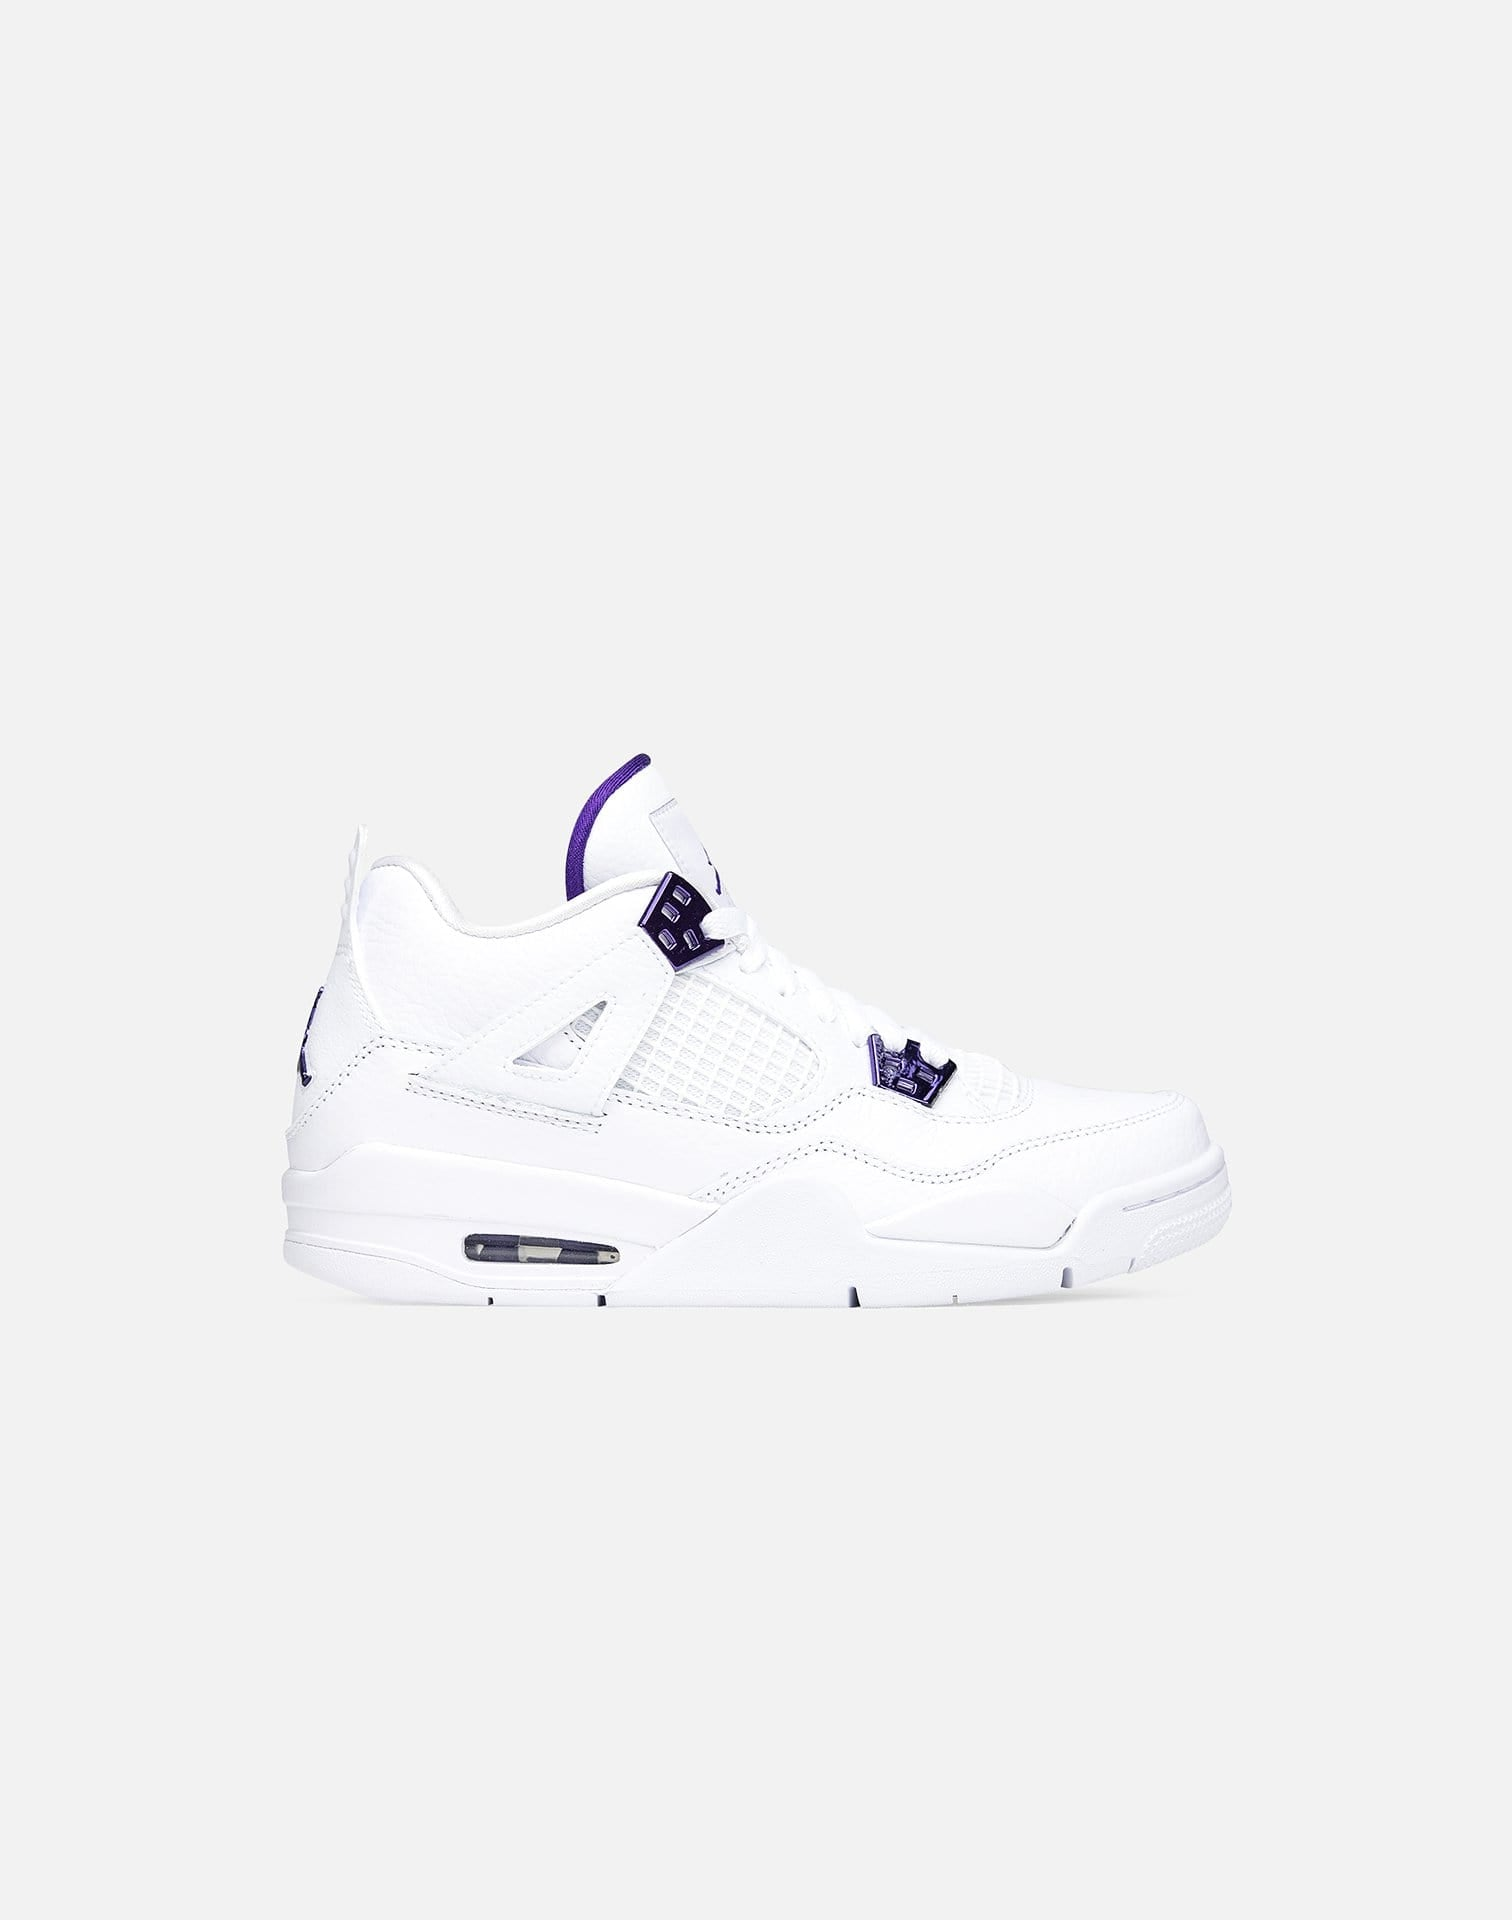 Jordan AIR JORDAN RETRO 4 'COURT PURPLE' GRADE-SCHOOL